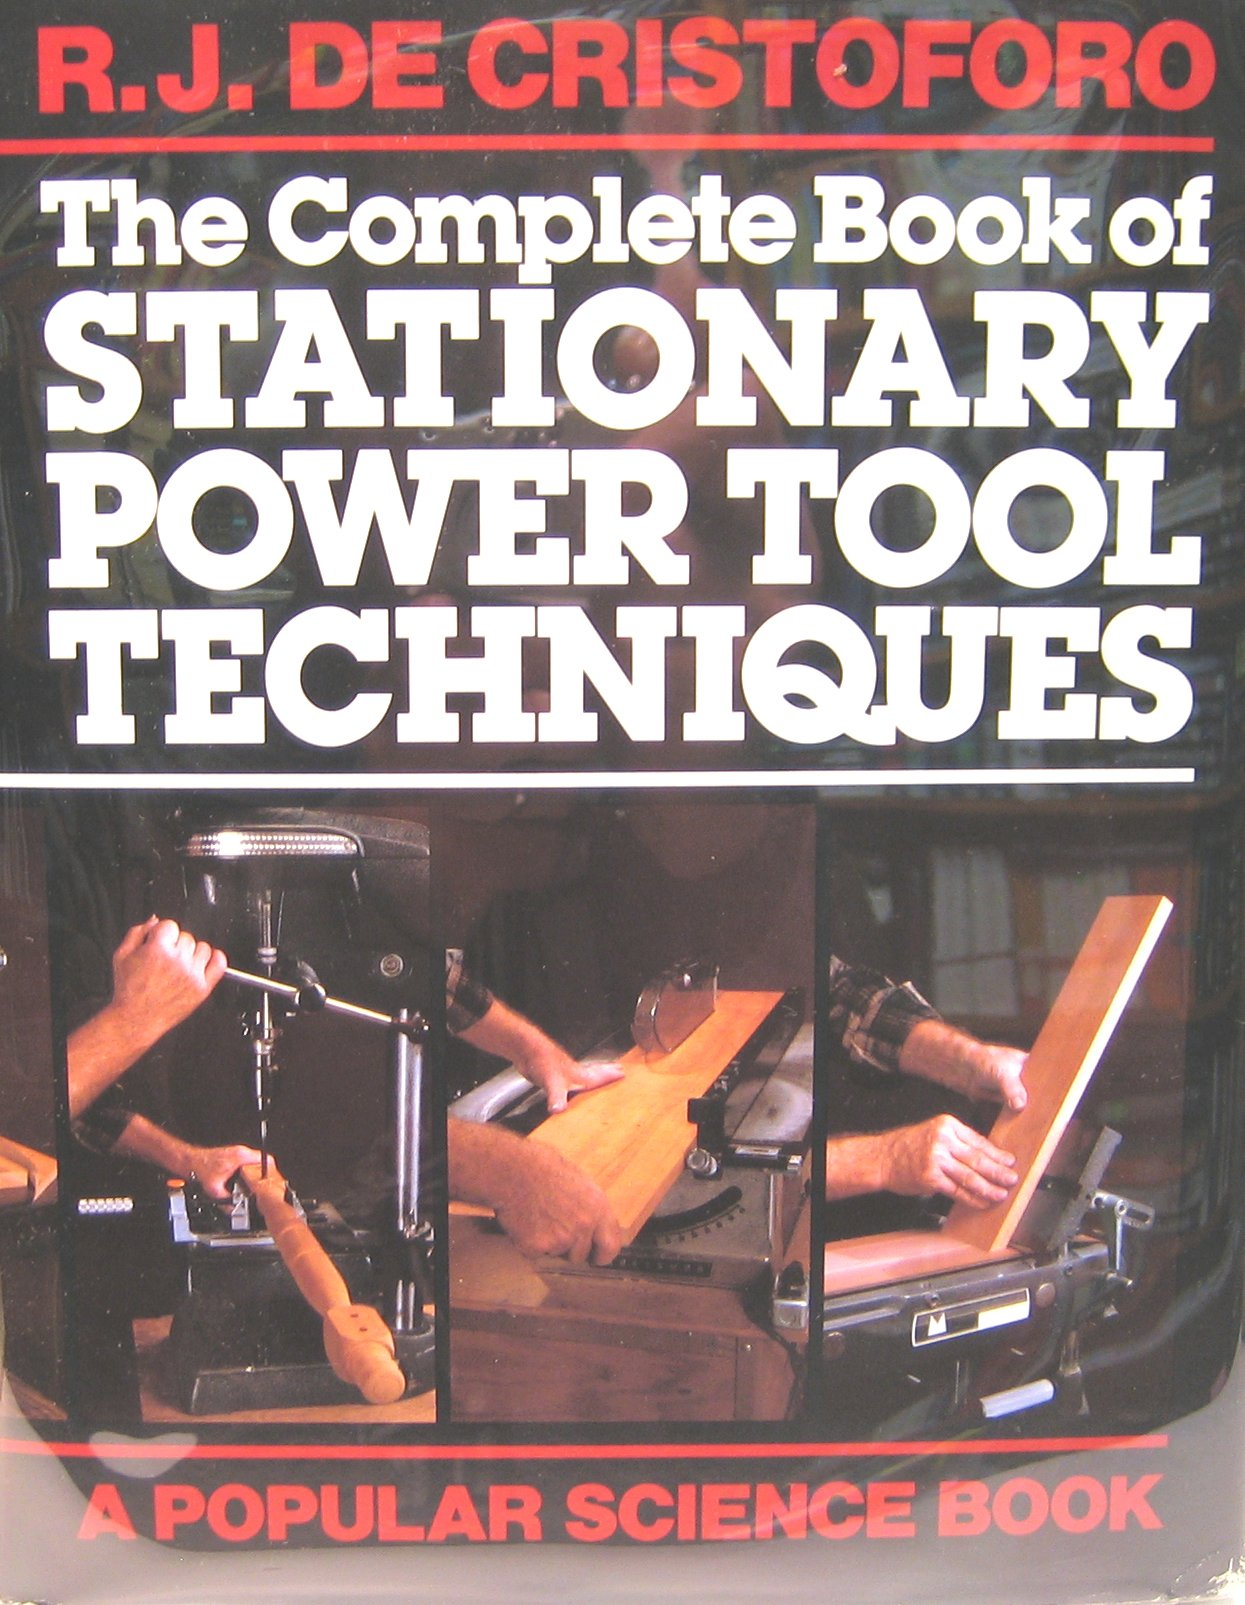 The Complete Book of Stationary Power Tool Techniques